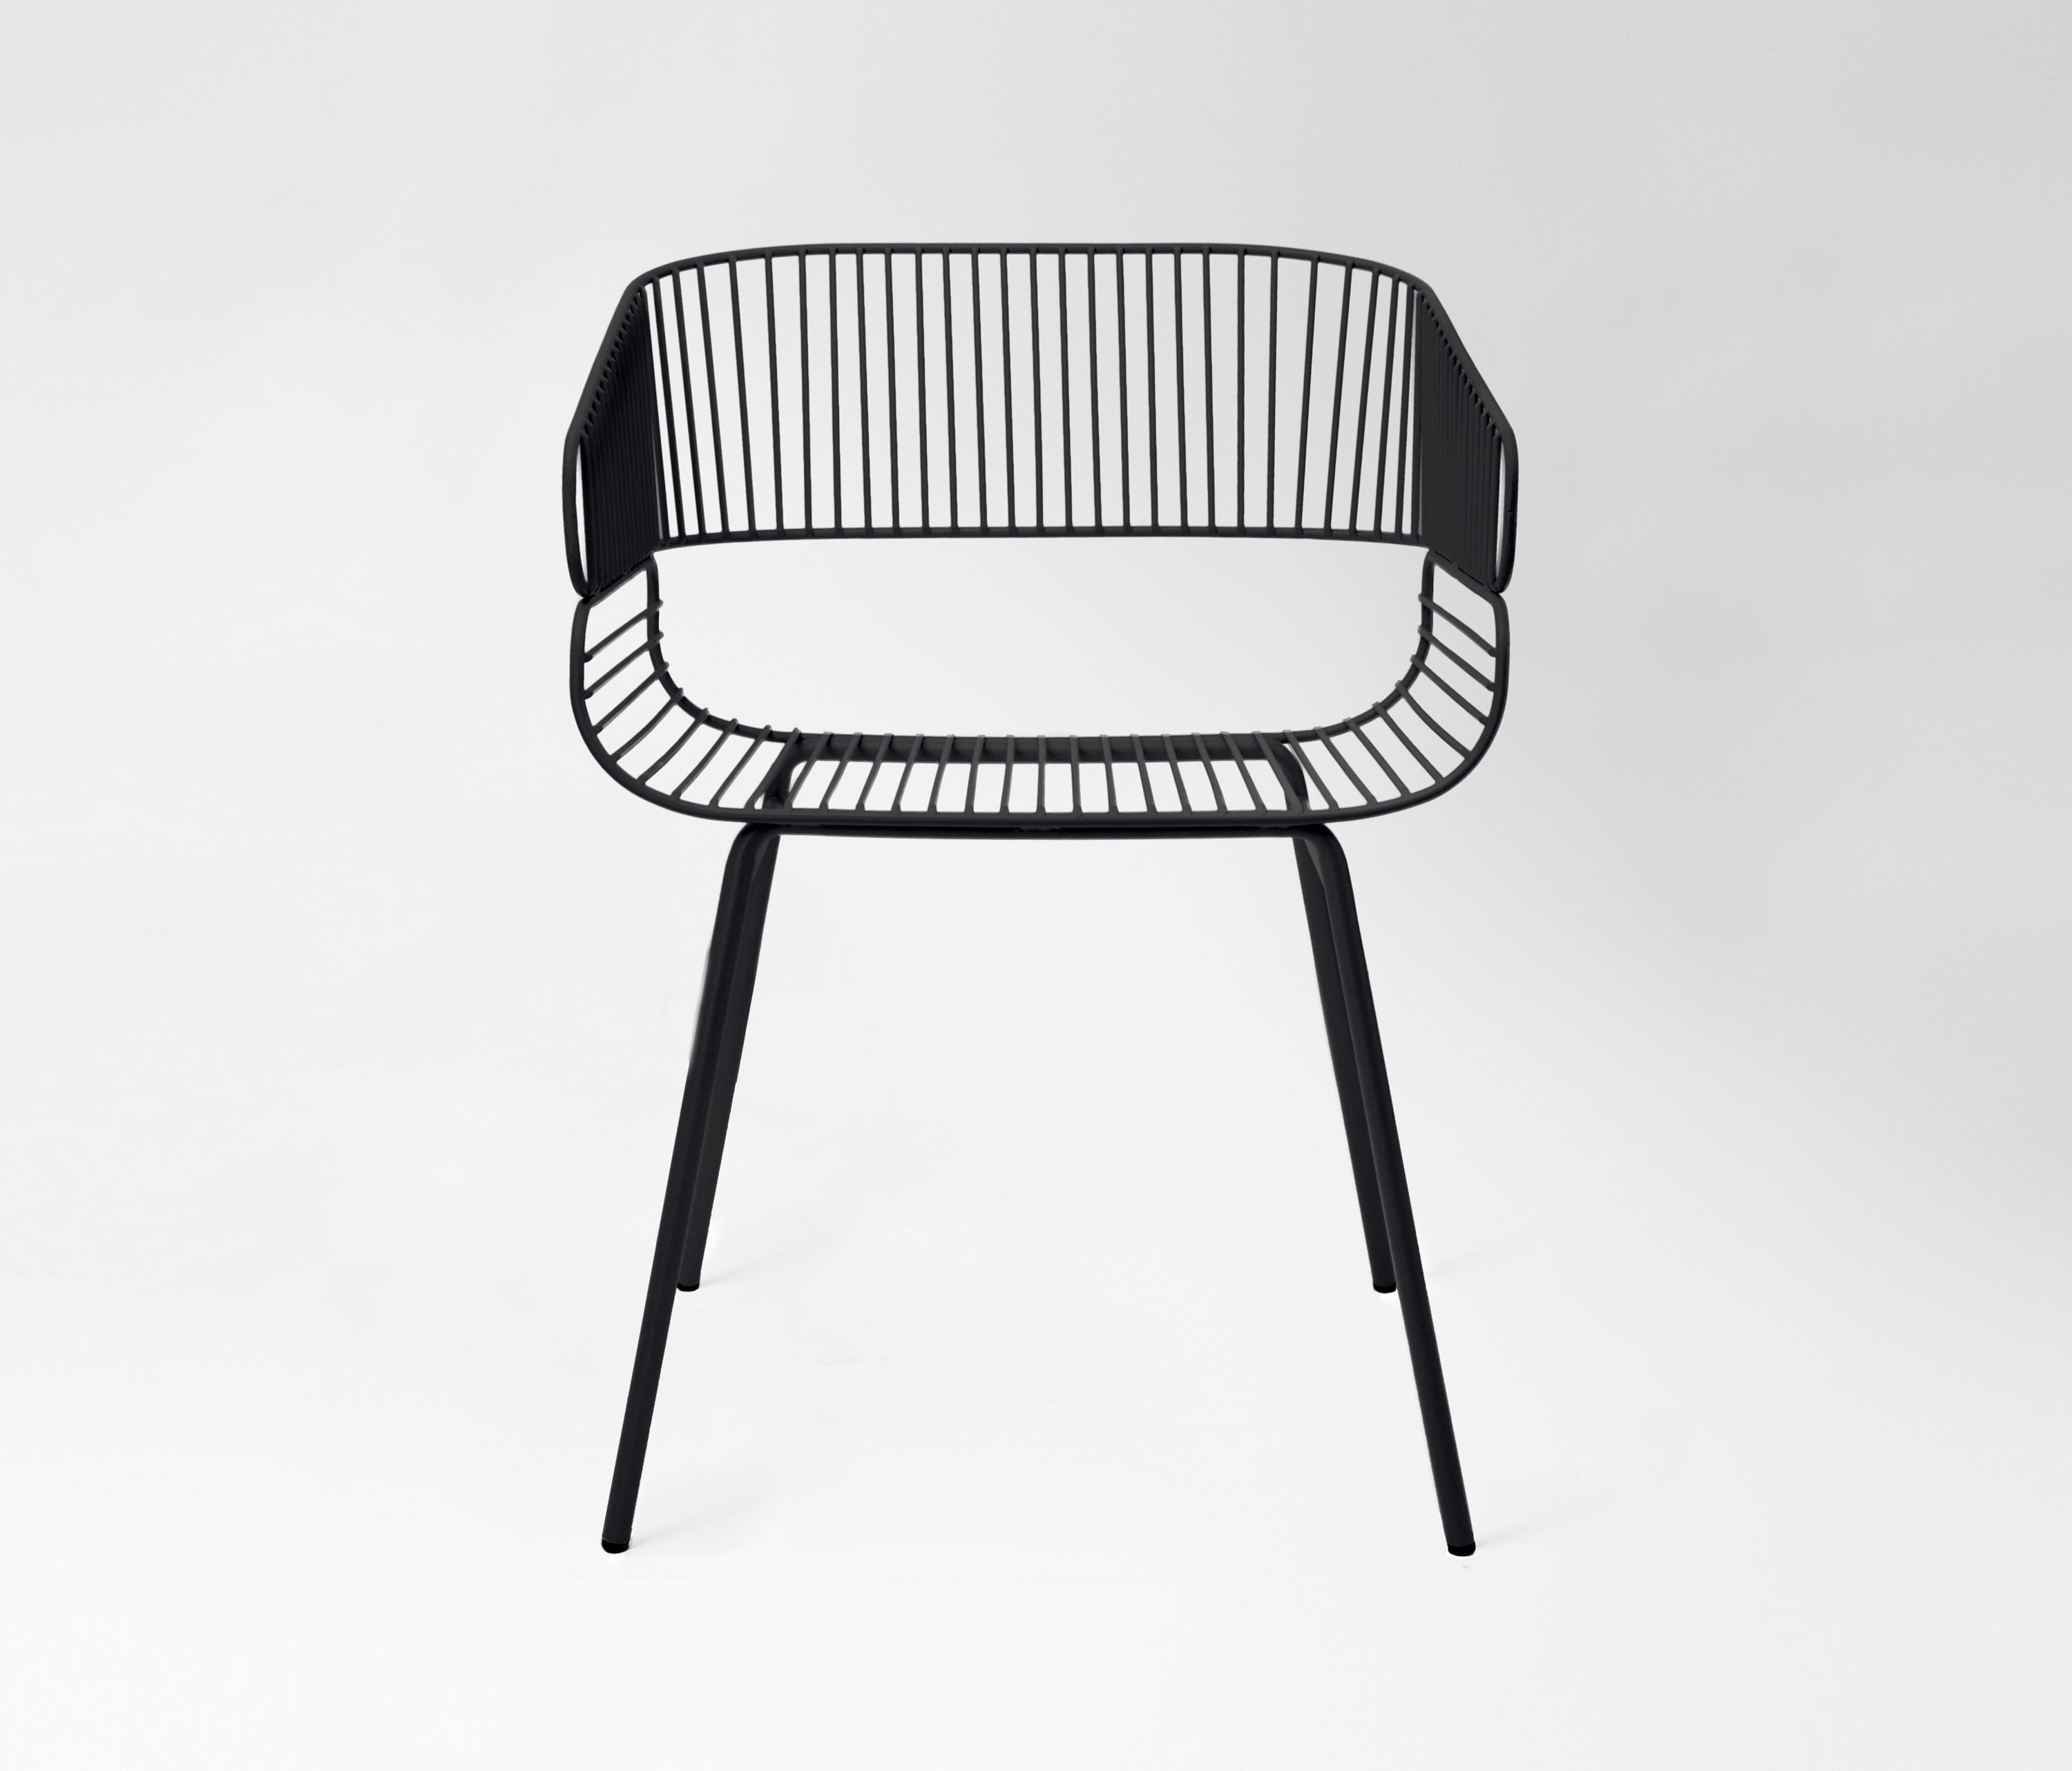 TRAME Restaurant chairs from Petite Friture